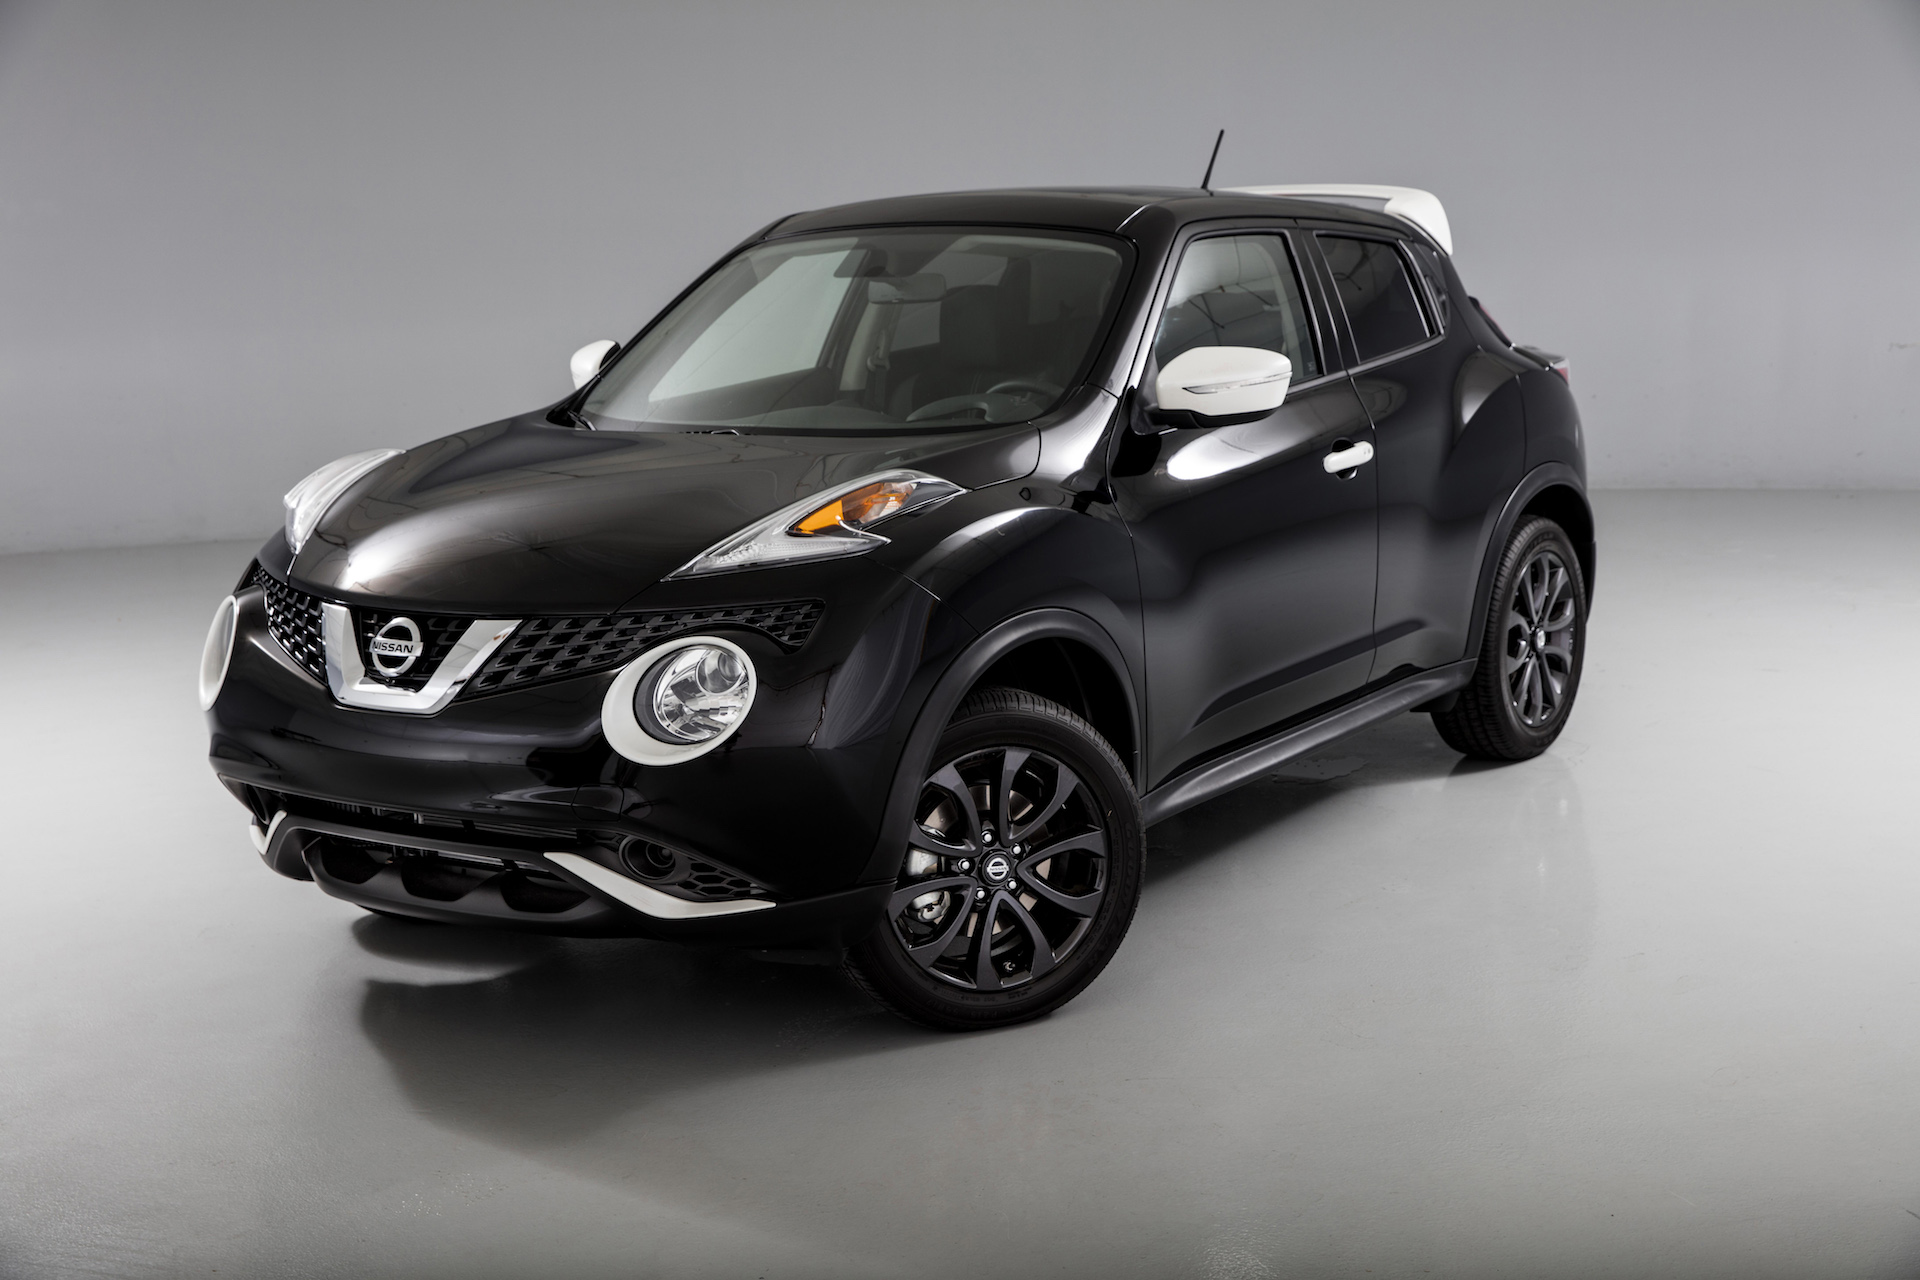 Minivans For Sale >> 2017 Nissan Juke Review, Ratings, Specs, Prices, and Photos - The Car Connection